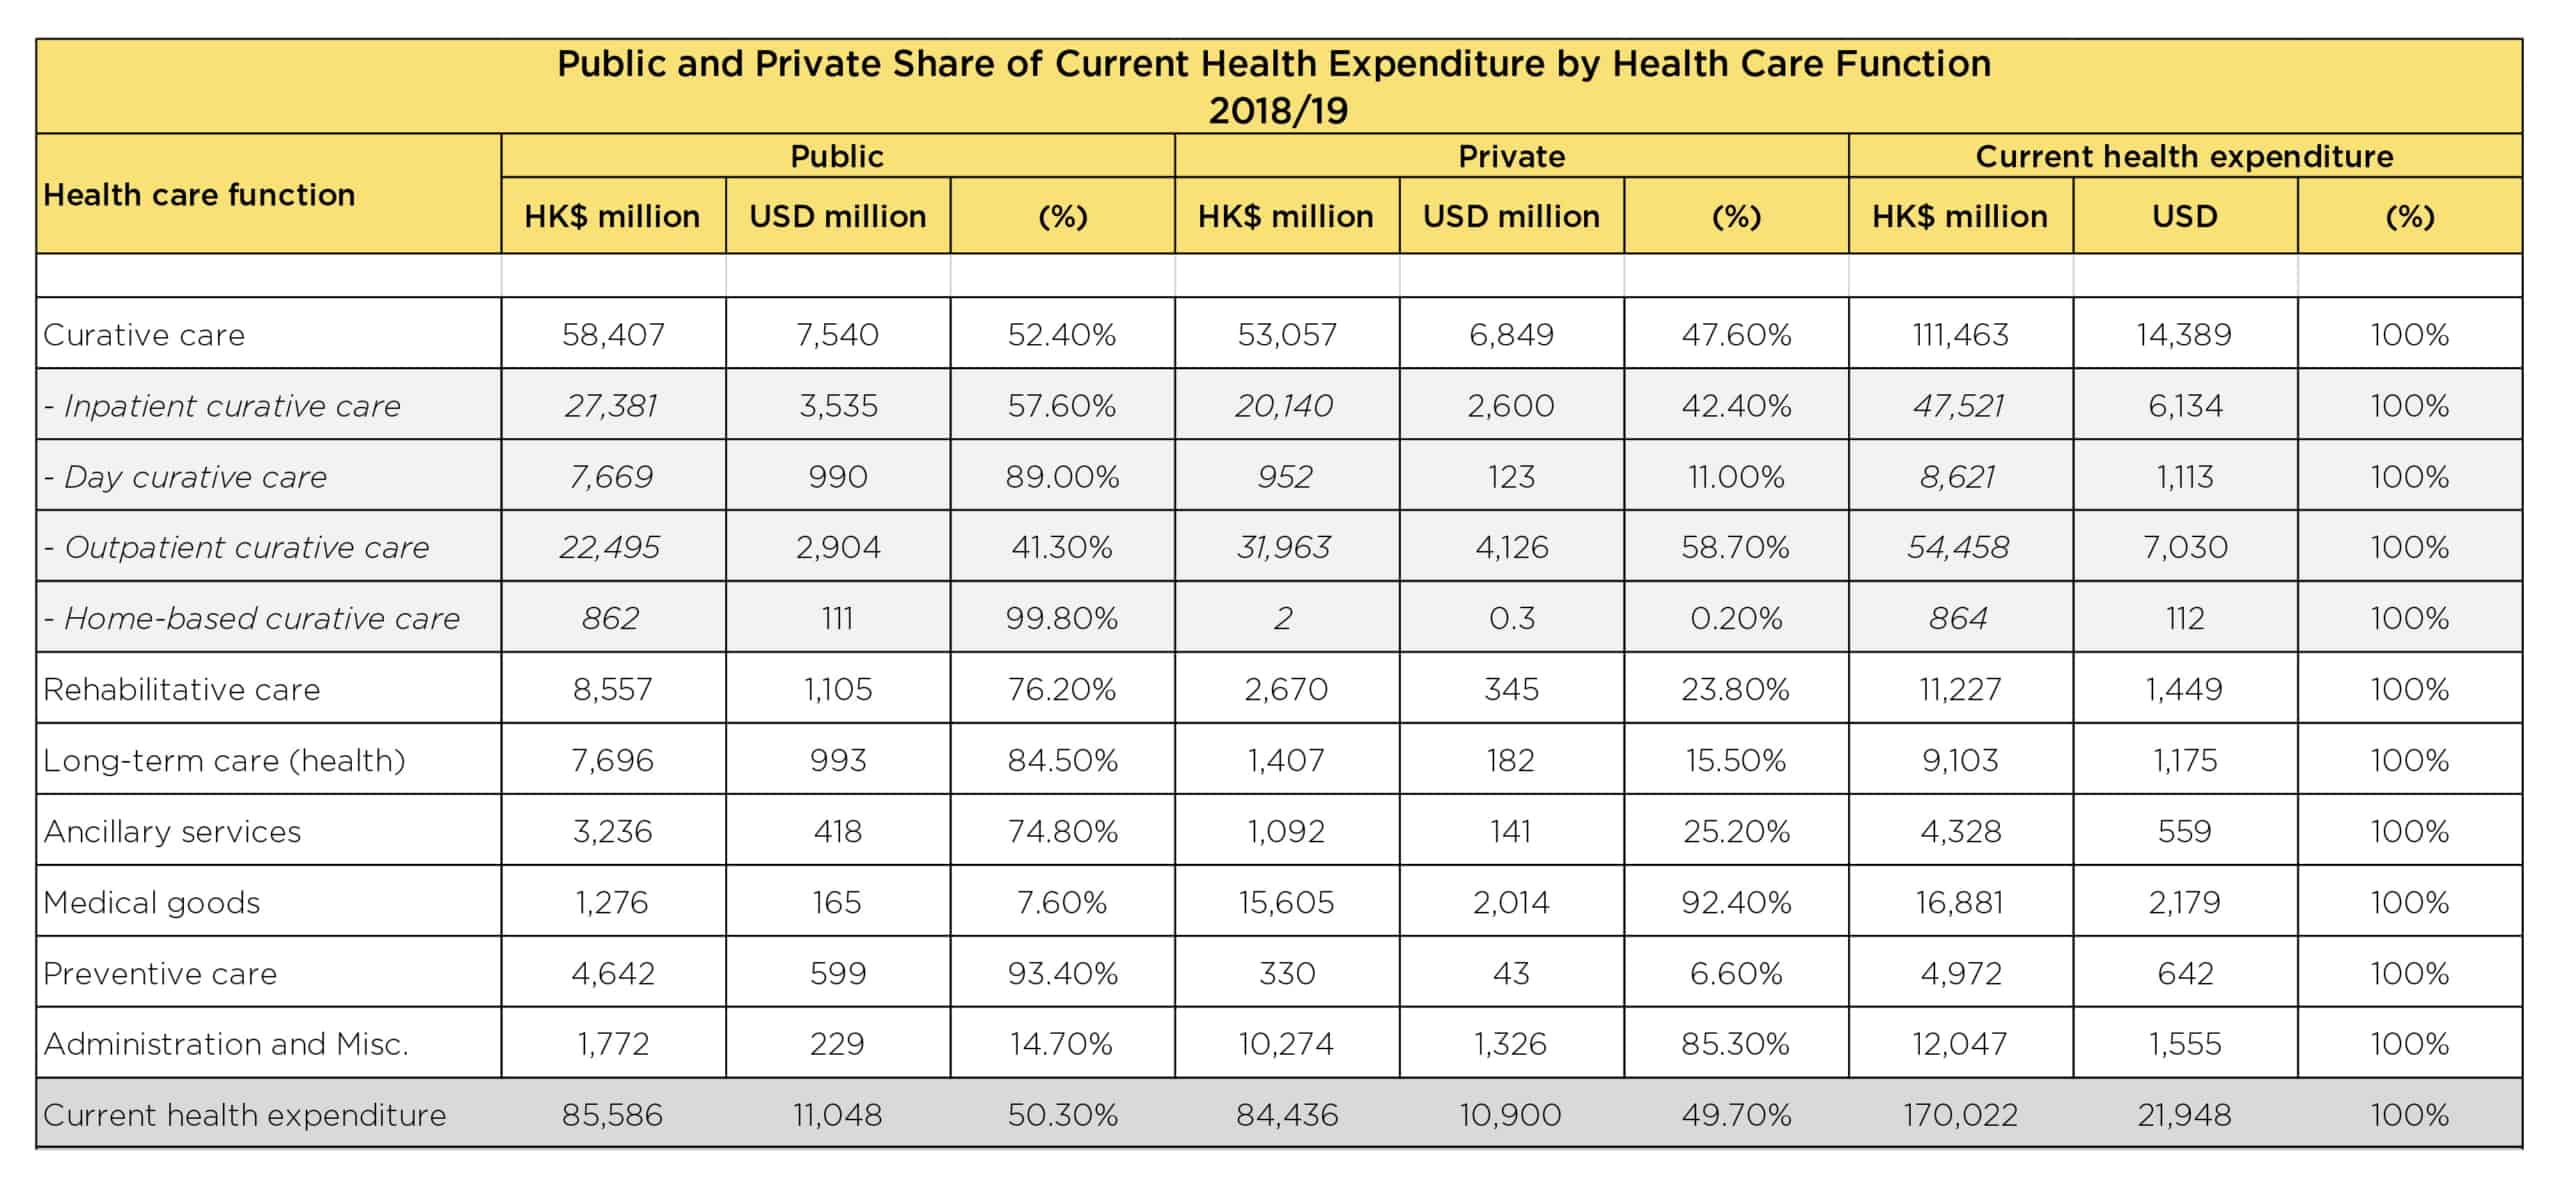 Hong Kong Healthcare expenditure breakdown